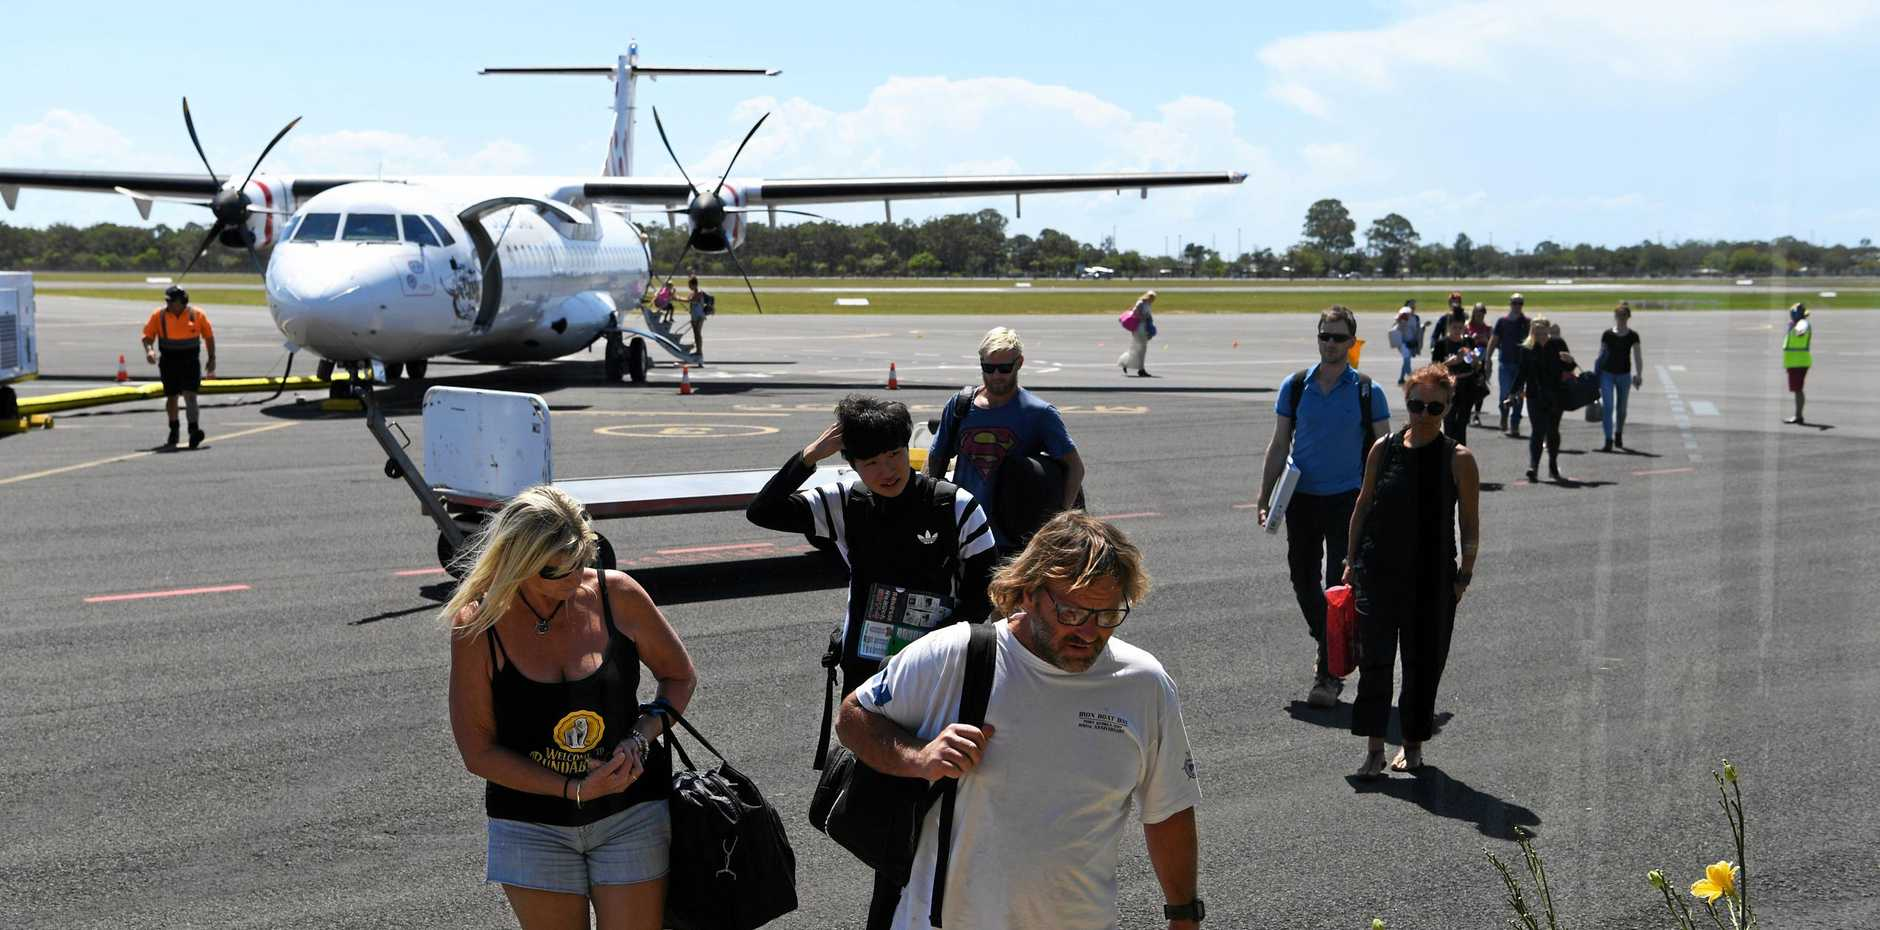 AIMING HIGH: Developers behind a mooted $25 million, 120-bed hotel near the Bundaberg Airport hope to capitalise on the region's tourism.